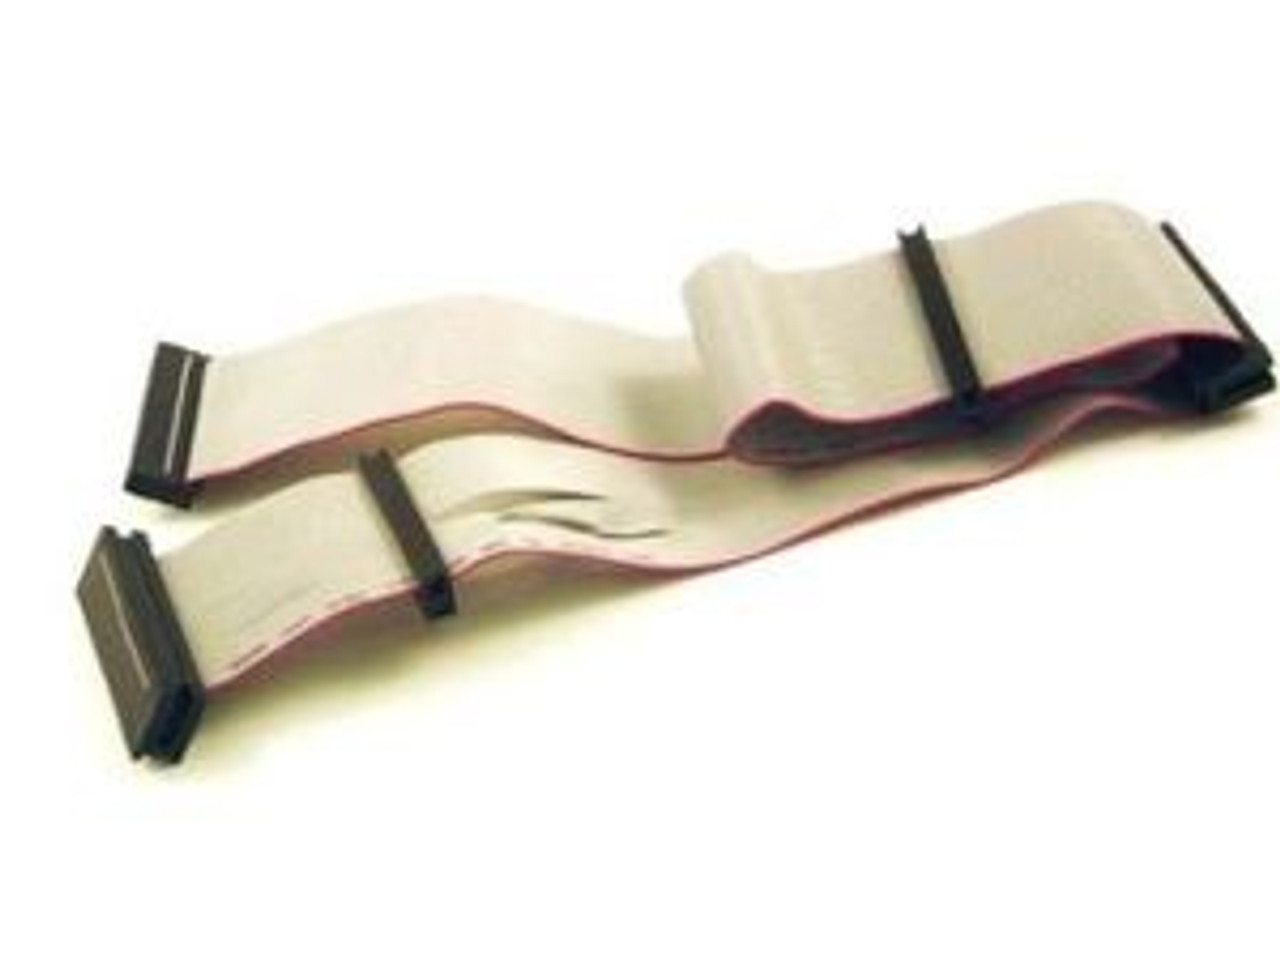 Floppy Drive Combo Cable: 34 Pin Edge, Pin / Edge, Pin / Pin - 28in